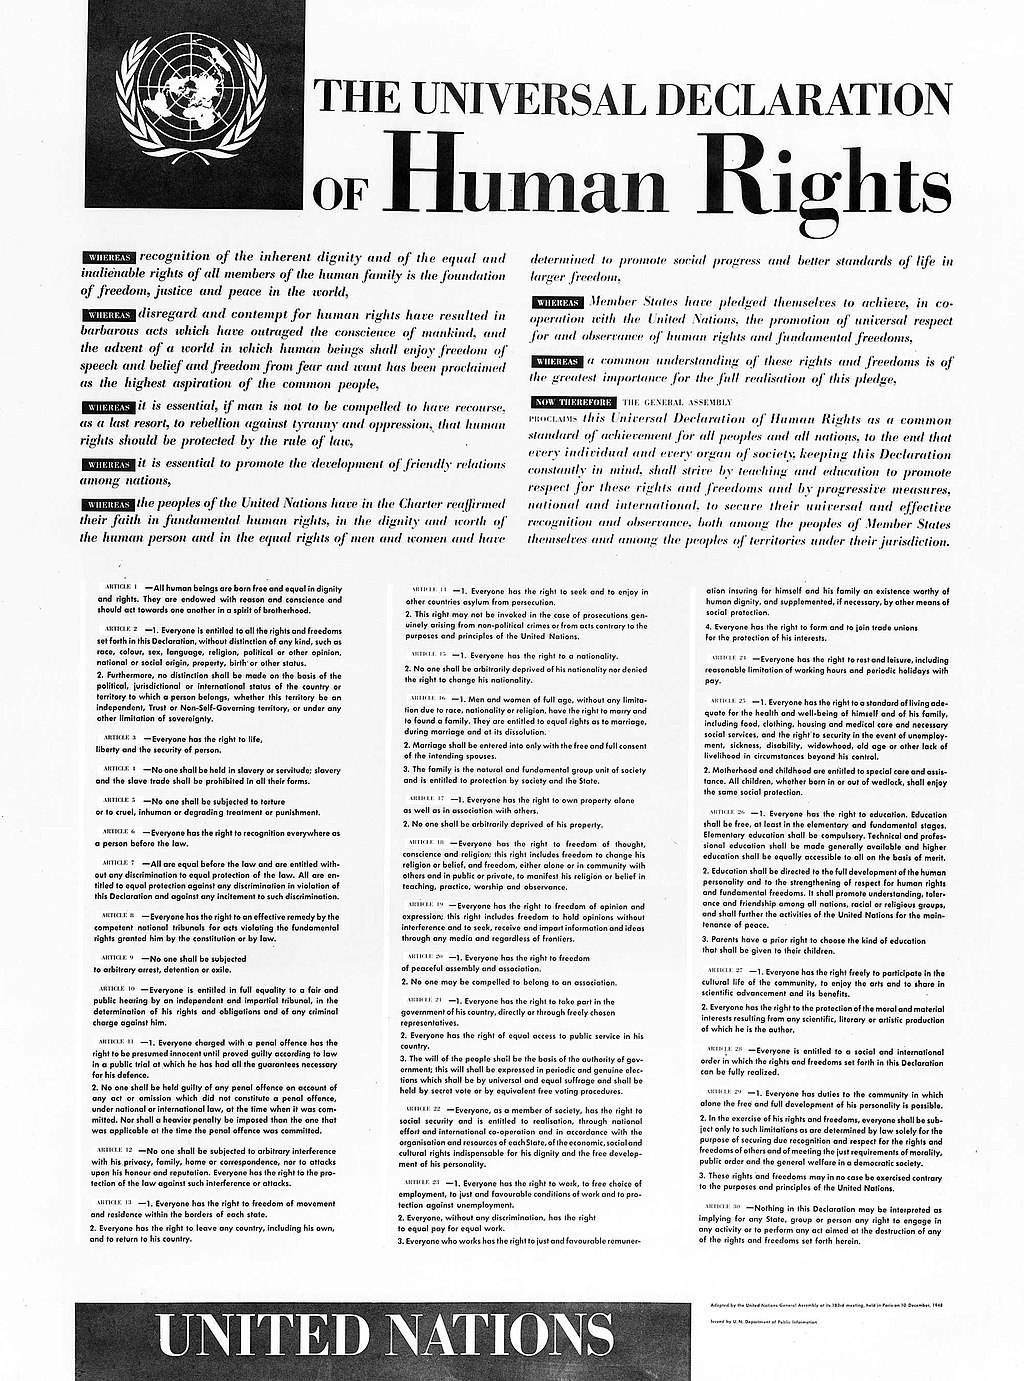 essay on universal access and human rights Human rights are universal, indivisible and interdependent human rights are what make us human when we speak of the right to life, or development, or to dissent and diversity, we are speaking of tolerance.